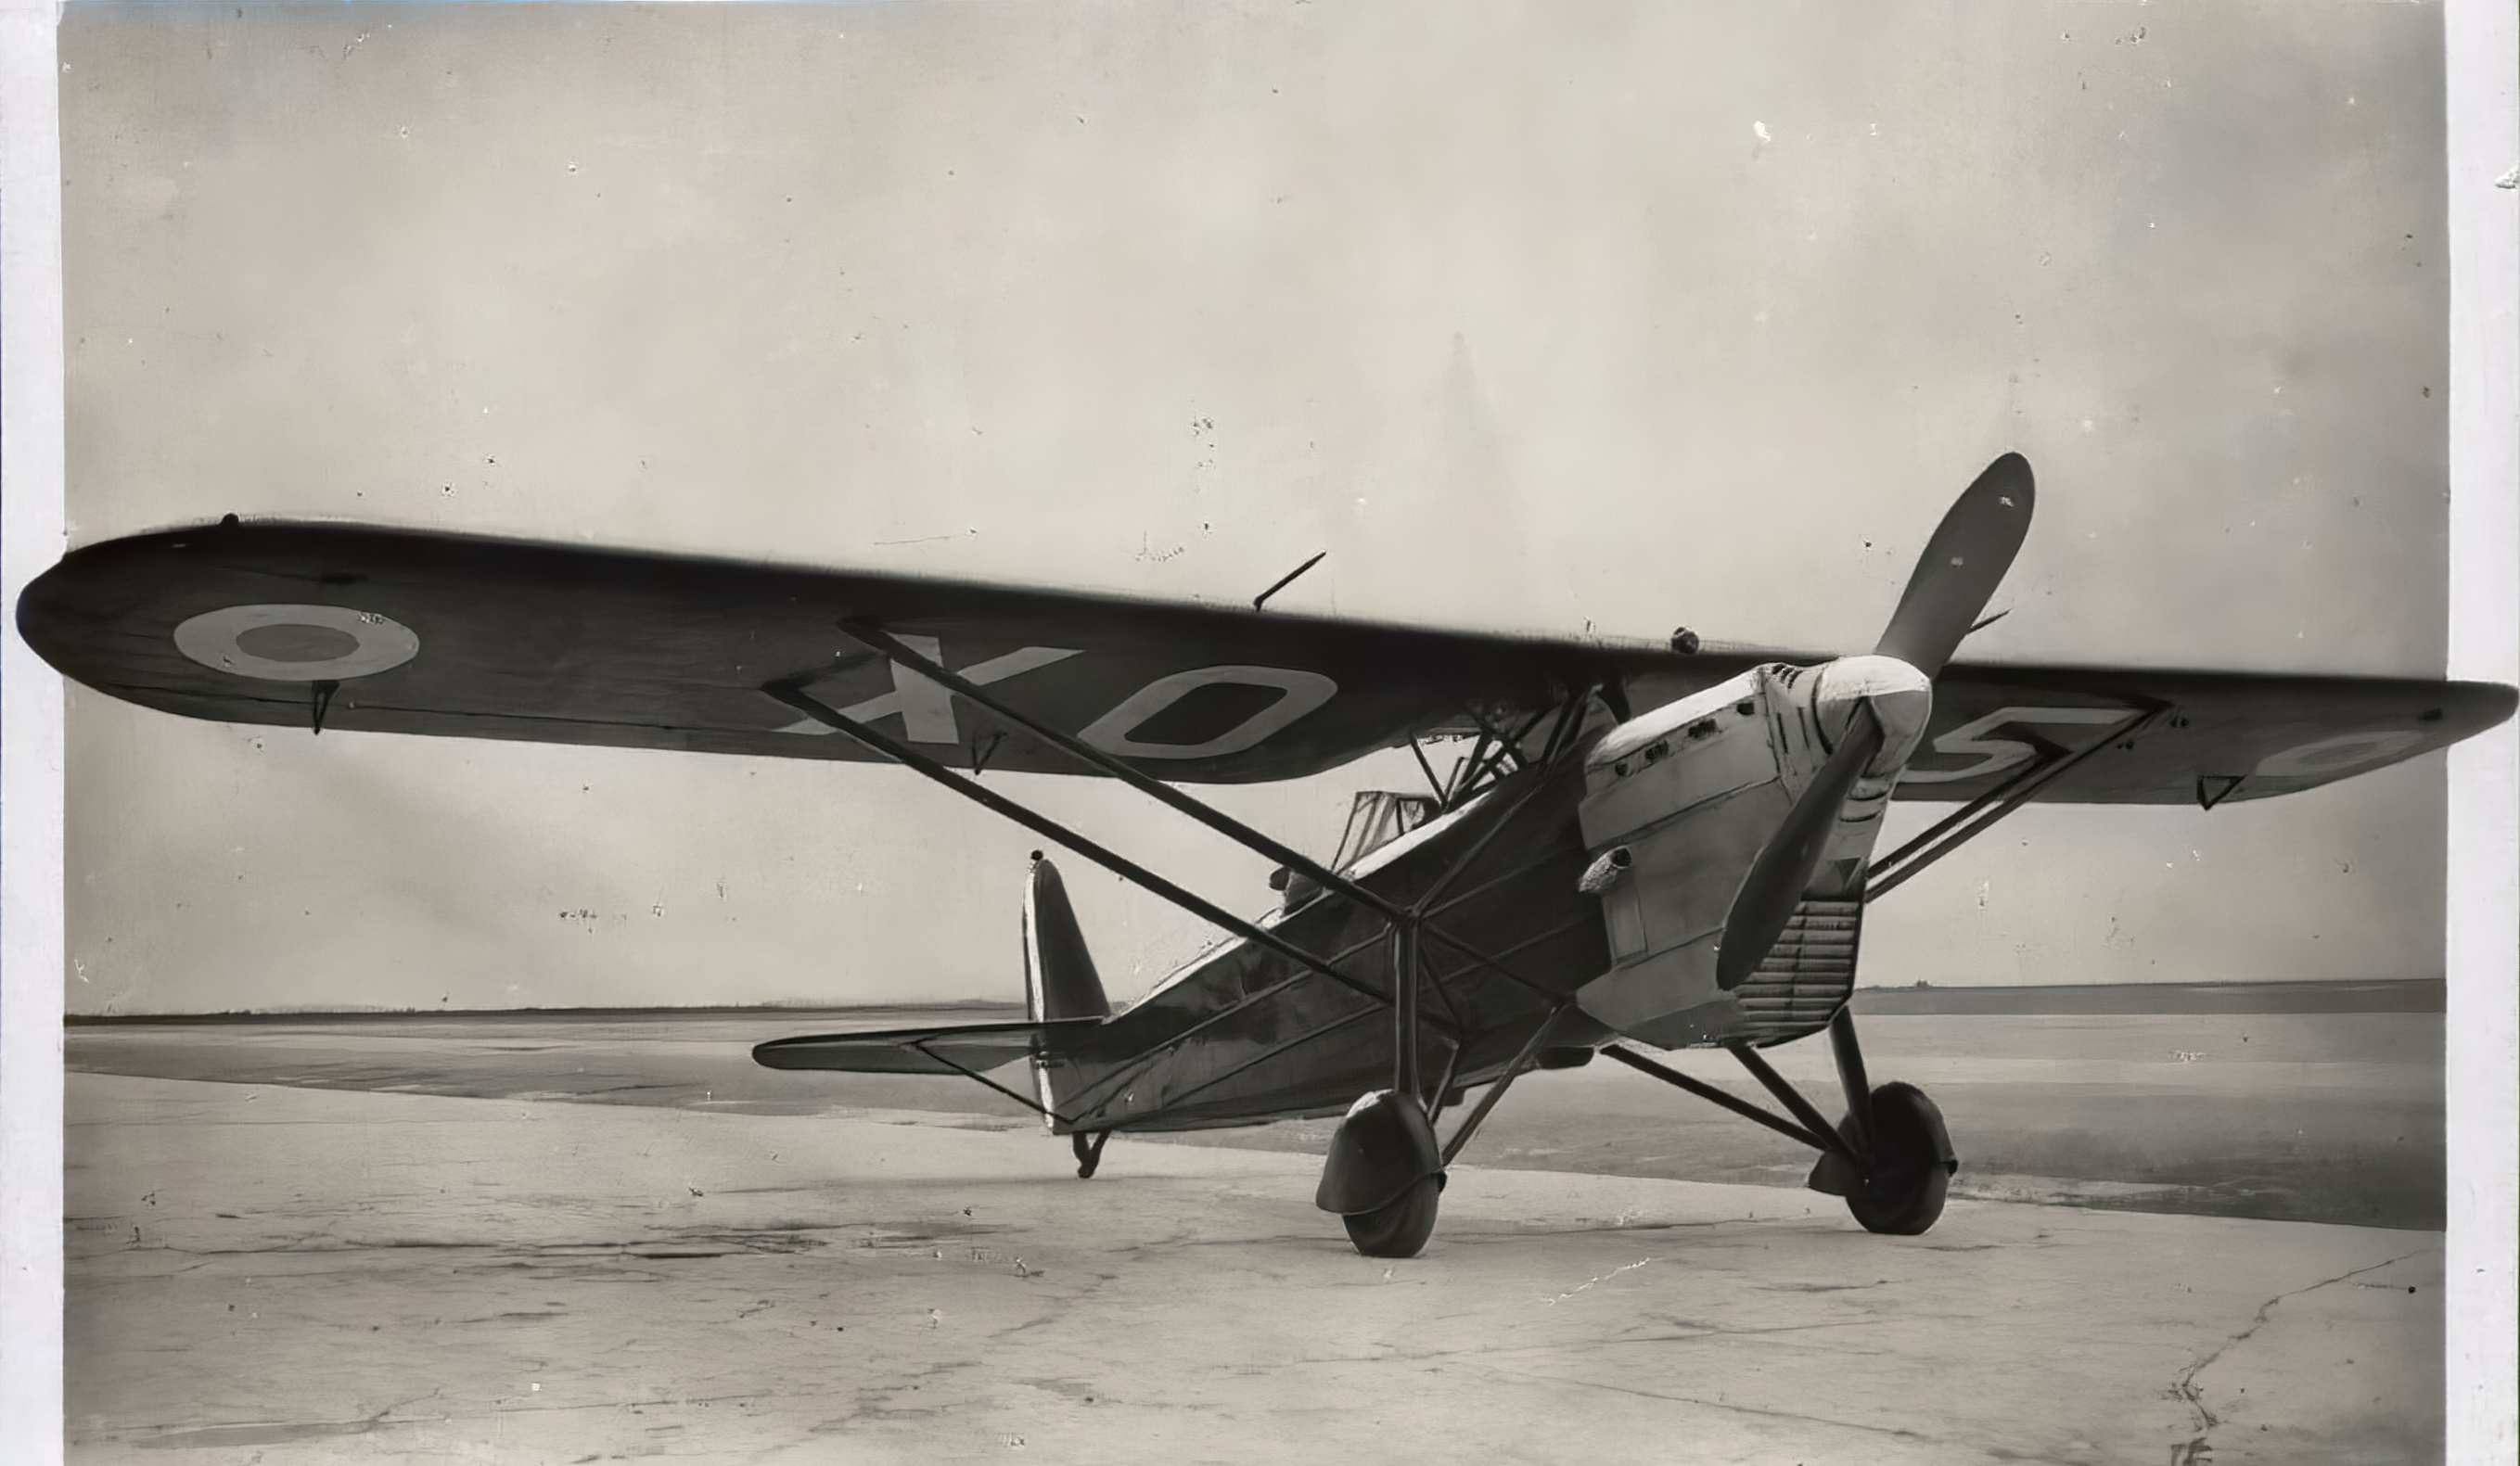 French Airforce Mureaux 117 X05 newly delivered ebay 01